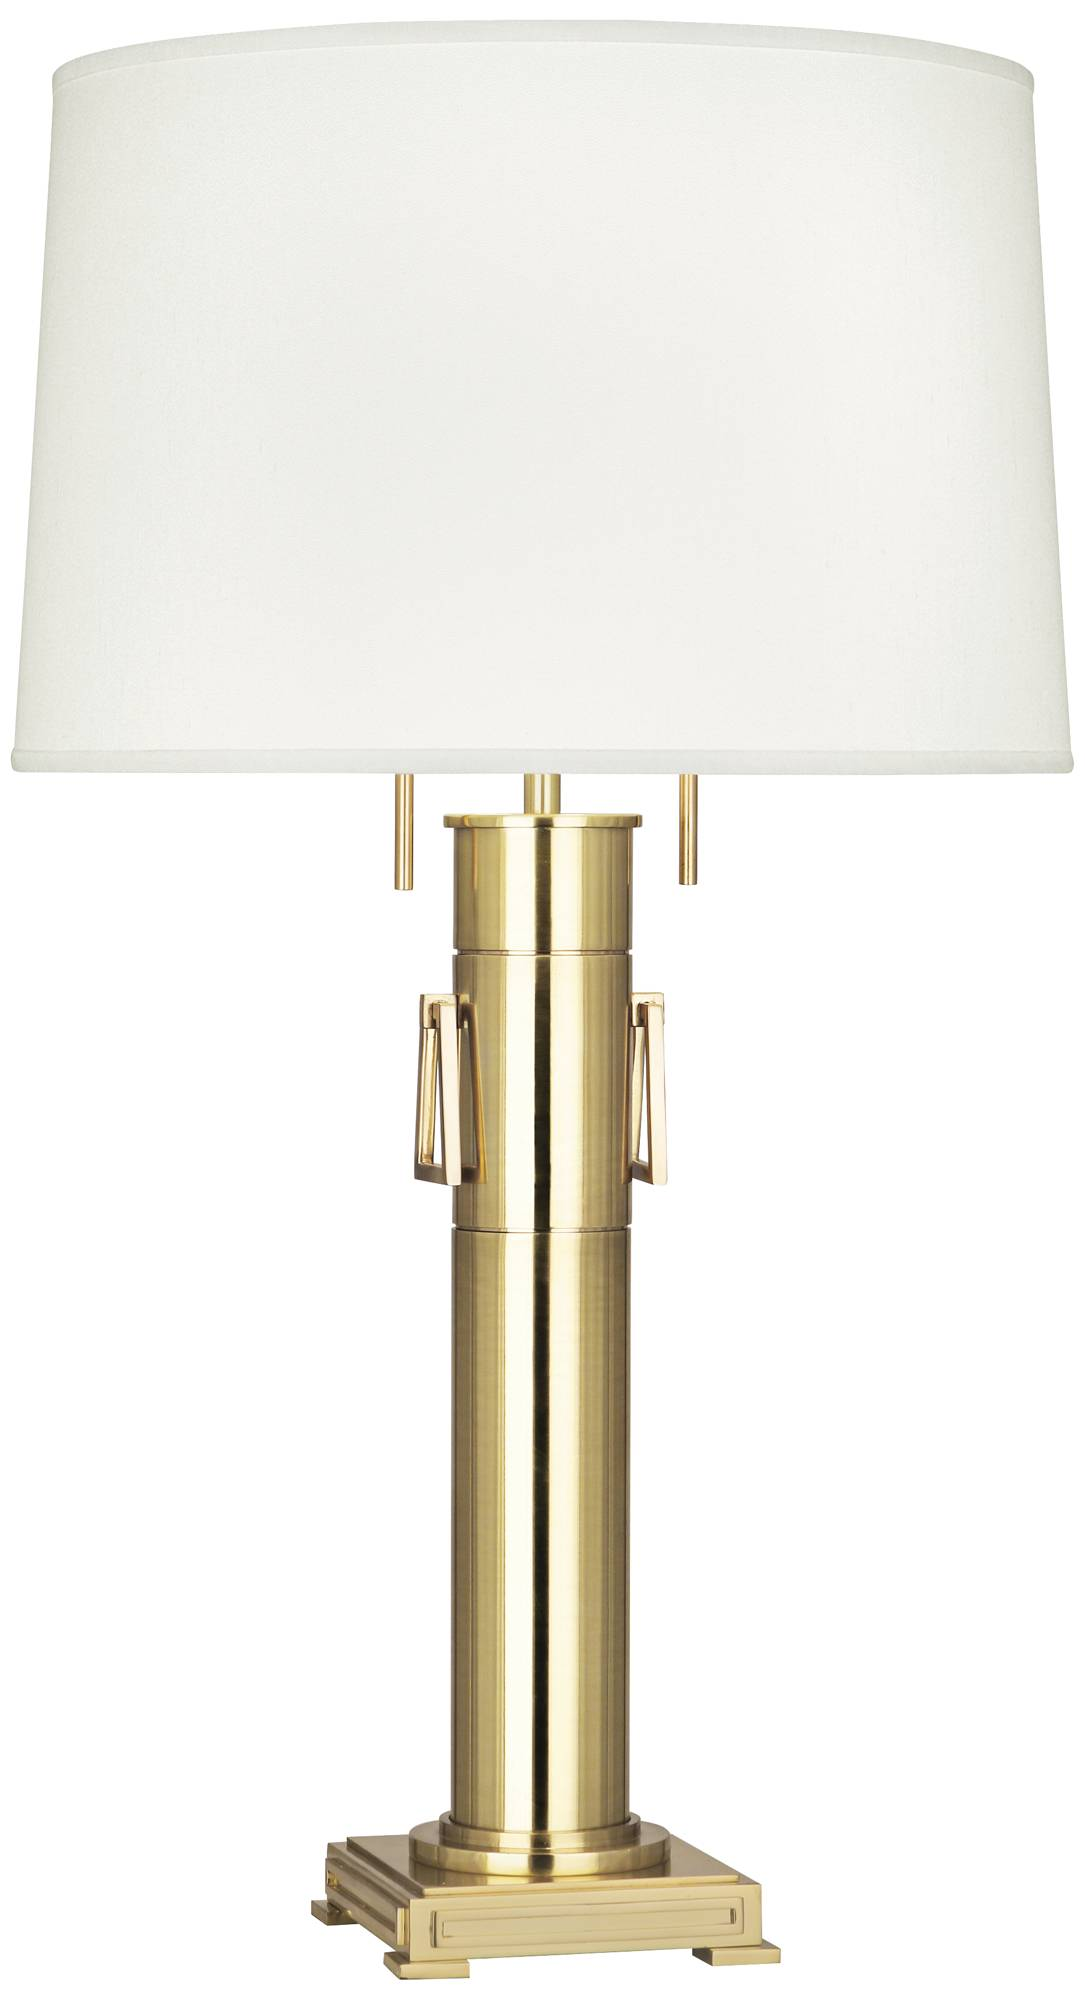 Robert abbey athena modern brass column table lamp 19n61 lamps plus